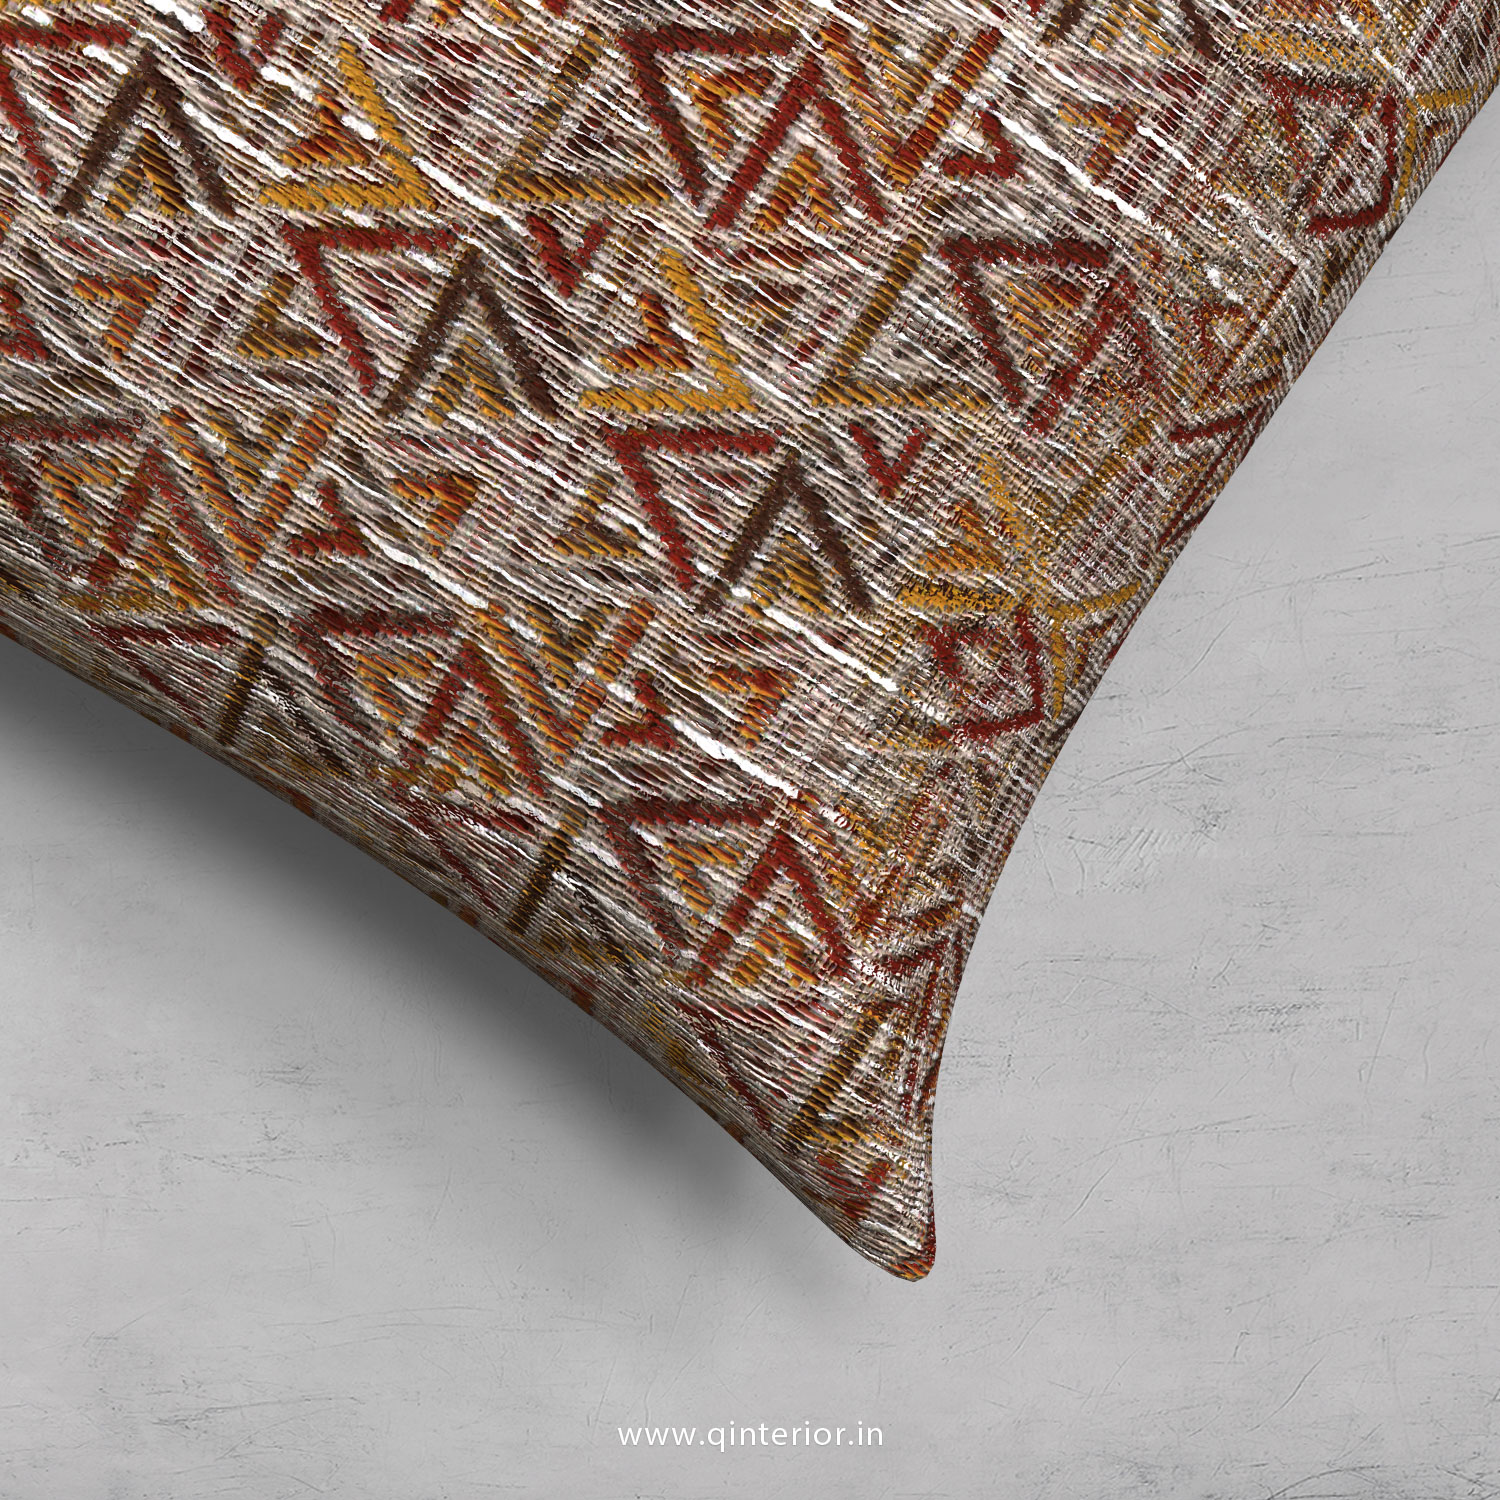 Cushion With Cushion Cover in Jacquard - CUS001 JQ32